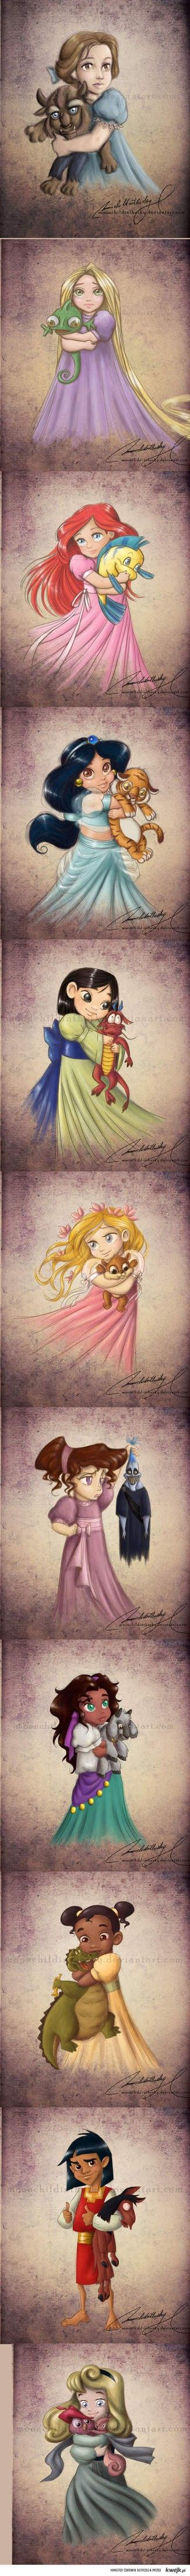 Disney Princesses with Their Favorite Stuffed Animals.